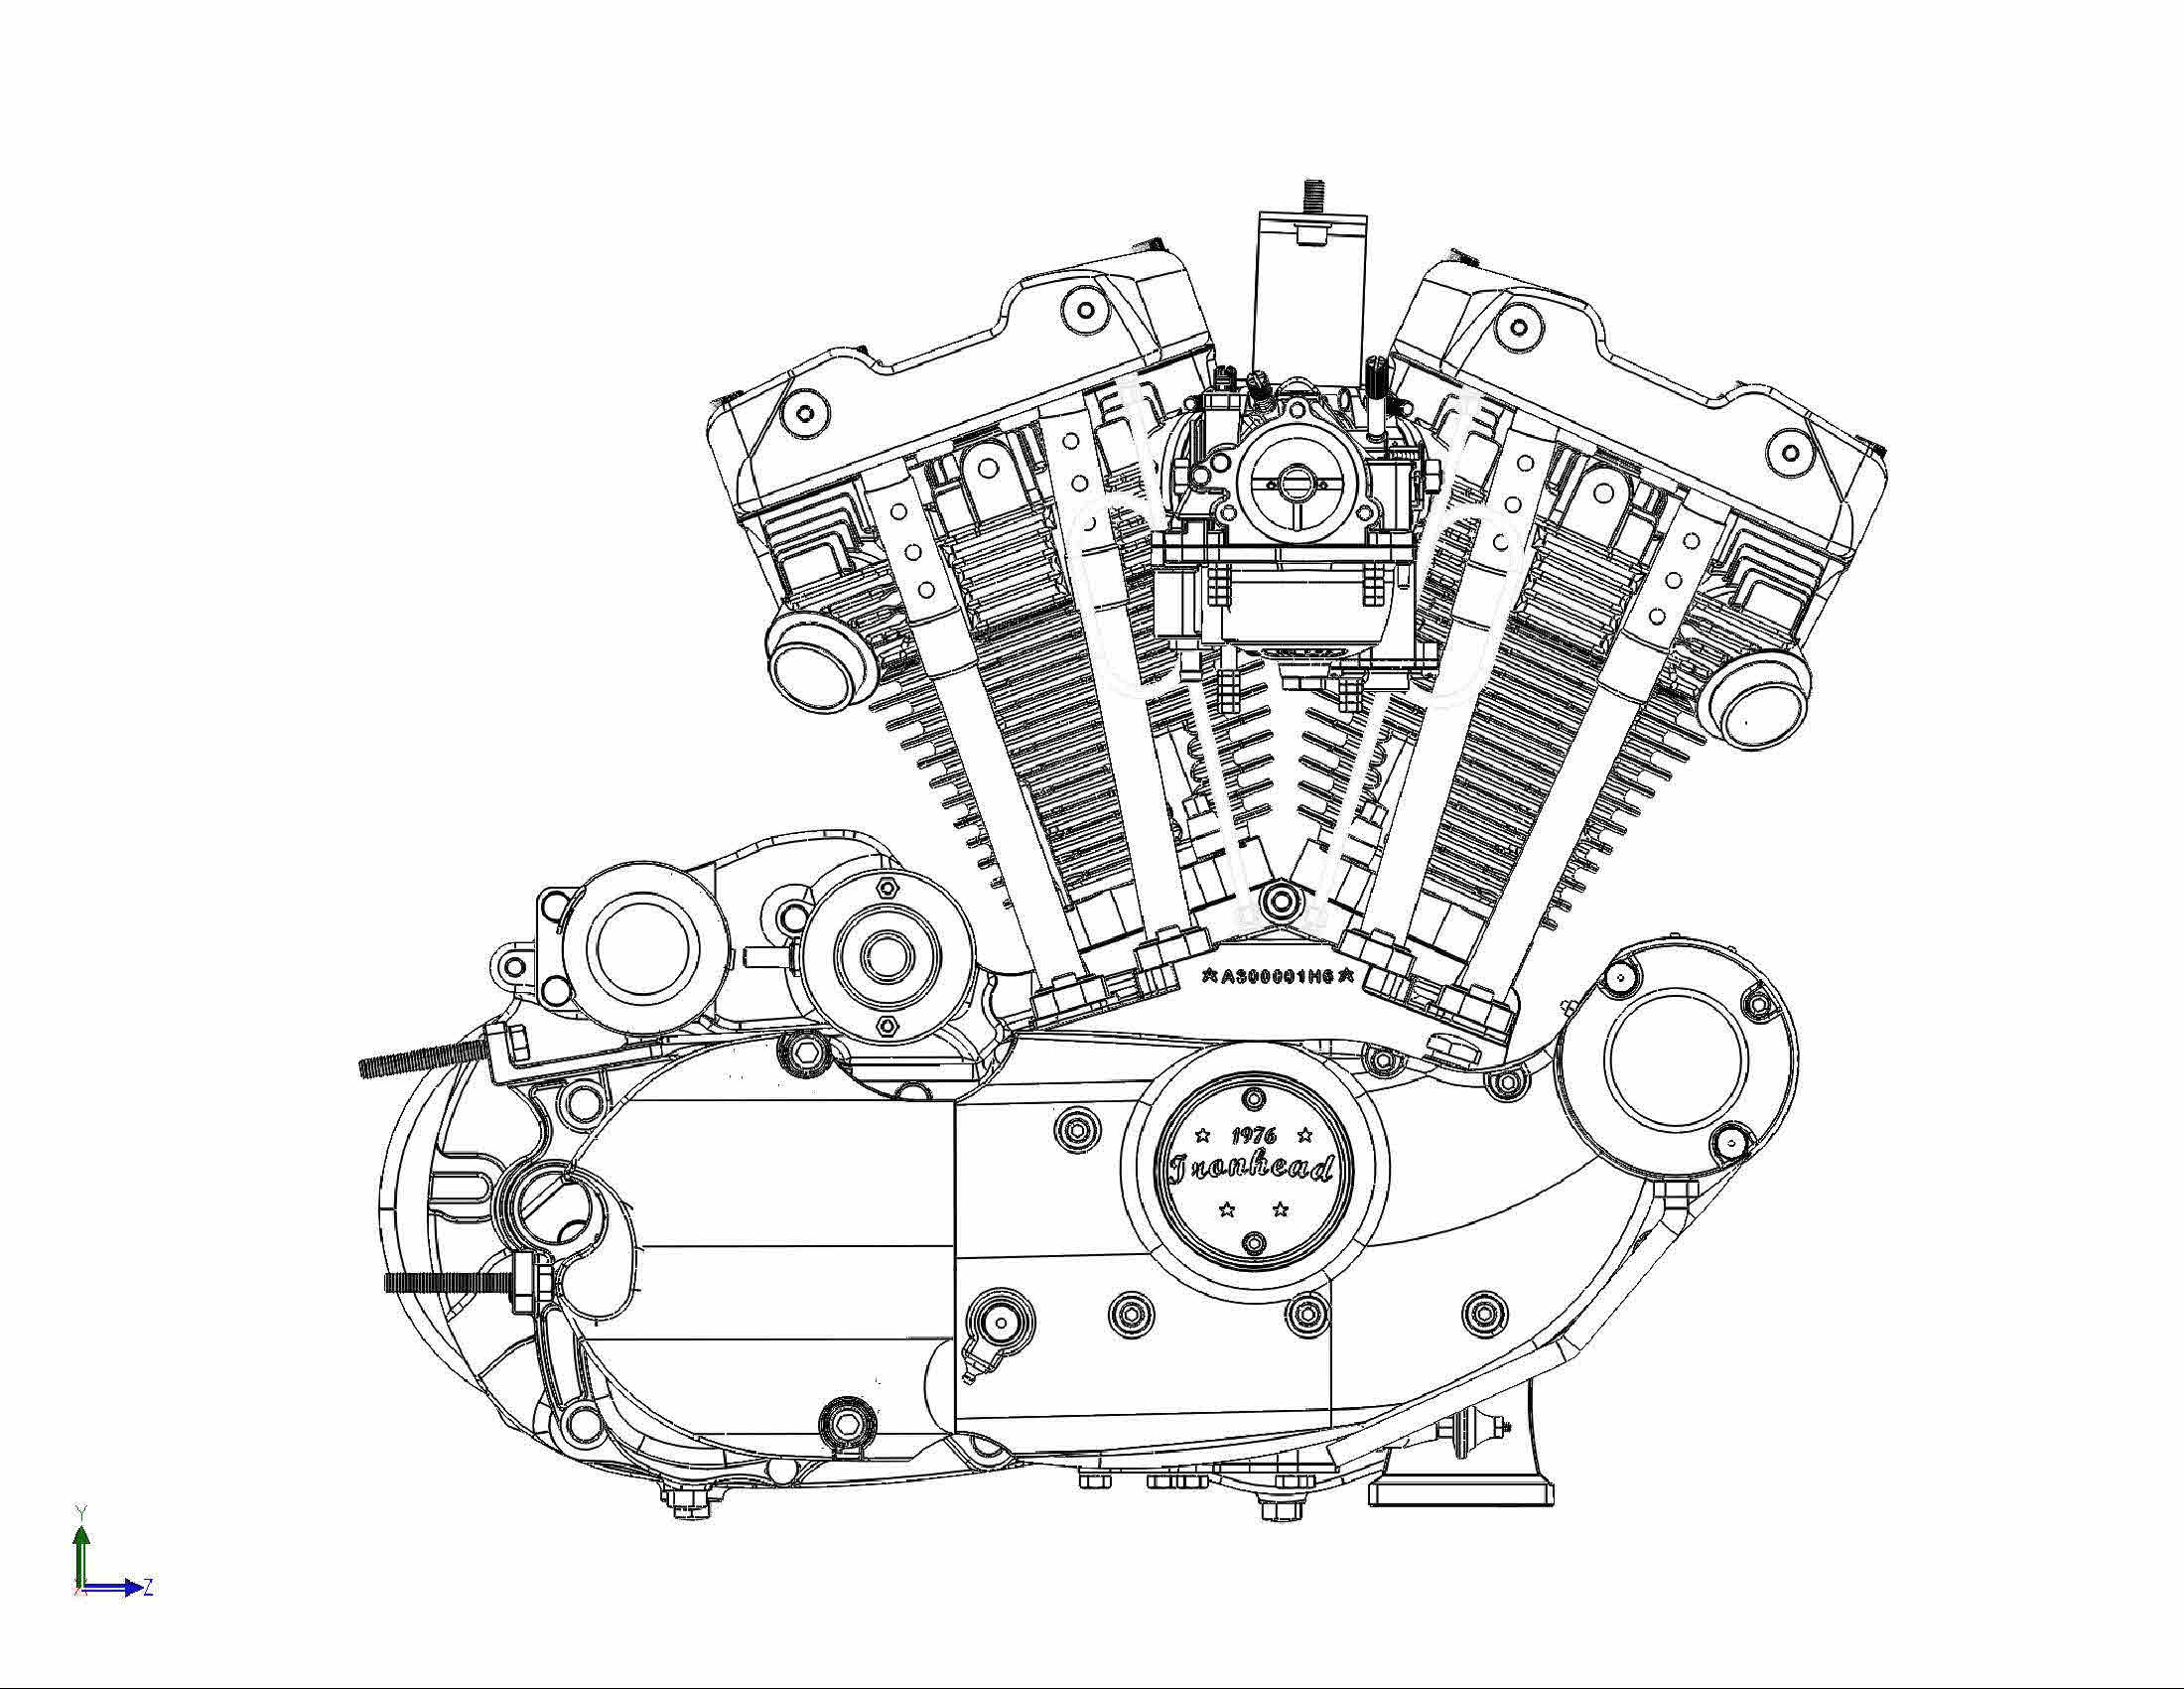 Harley Motorcycle Engine Drawing Sketch Coloring Page